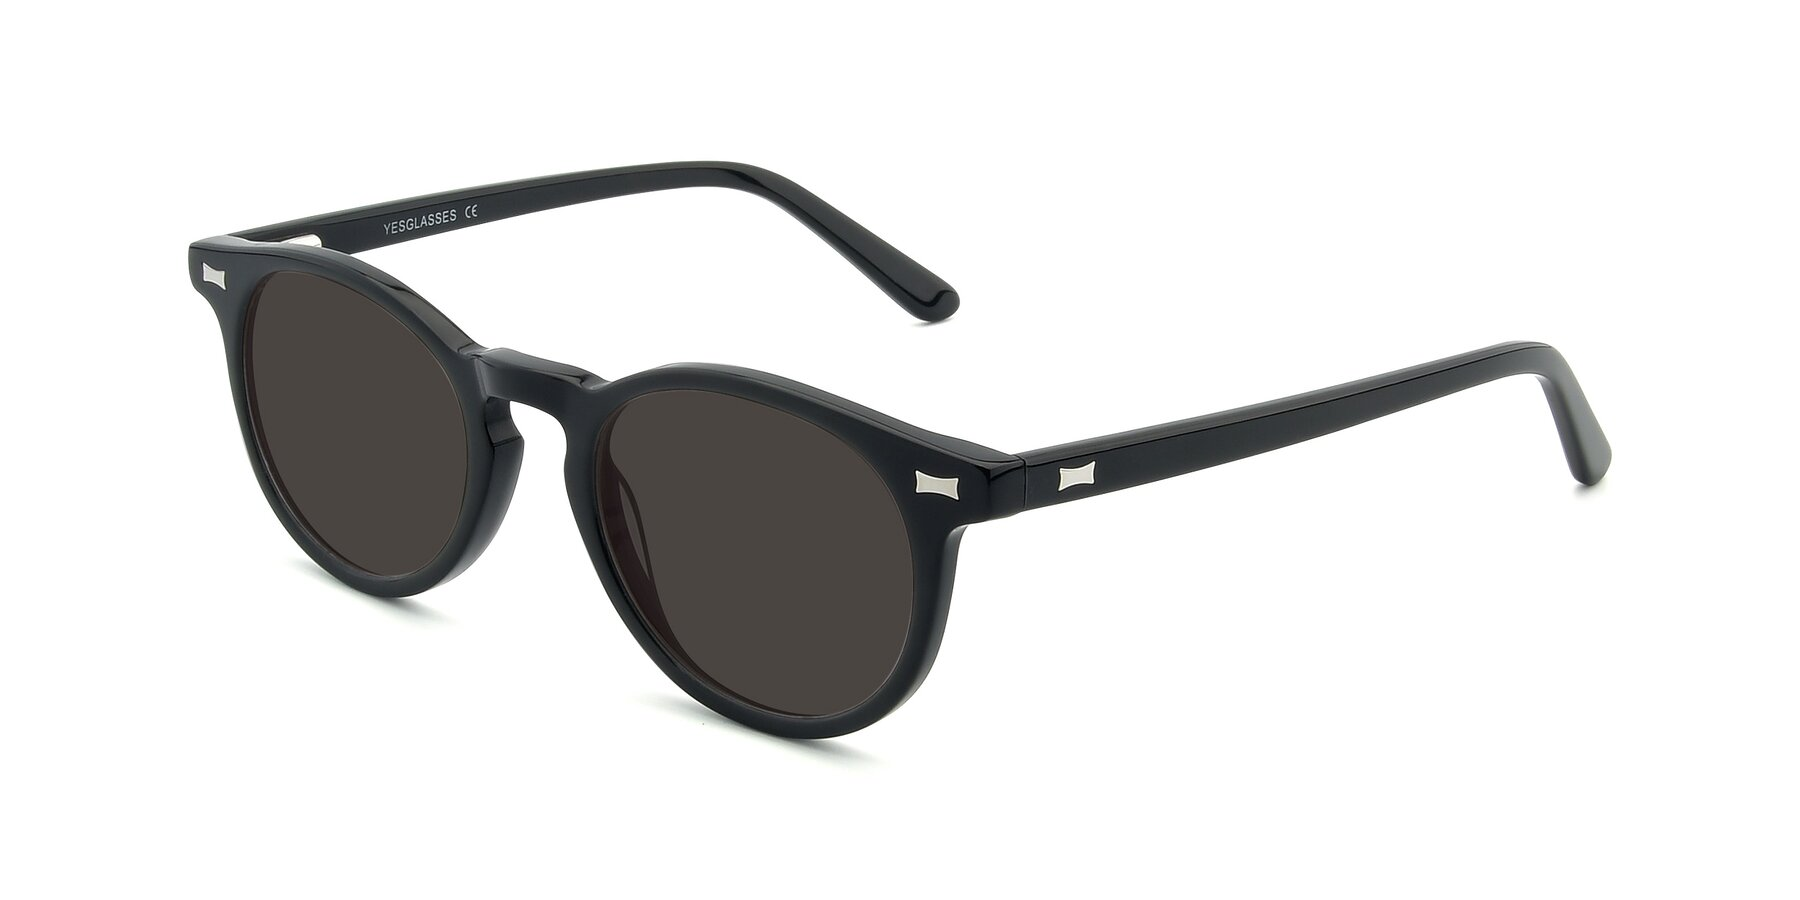 Angle of 17330 in Black with Gray Tinted Lenses